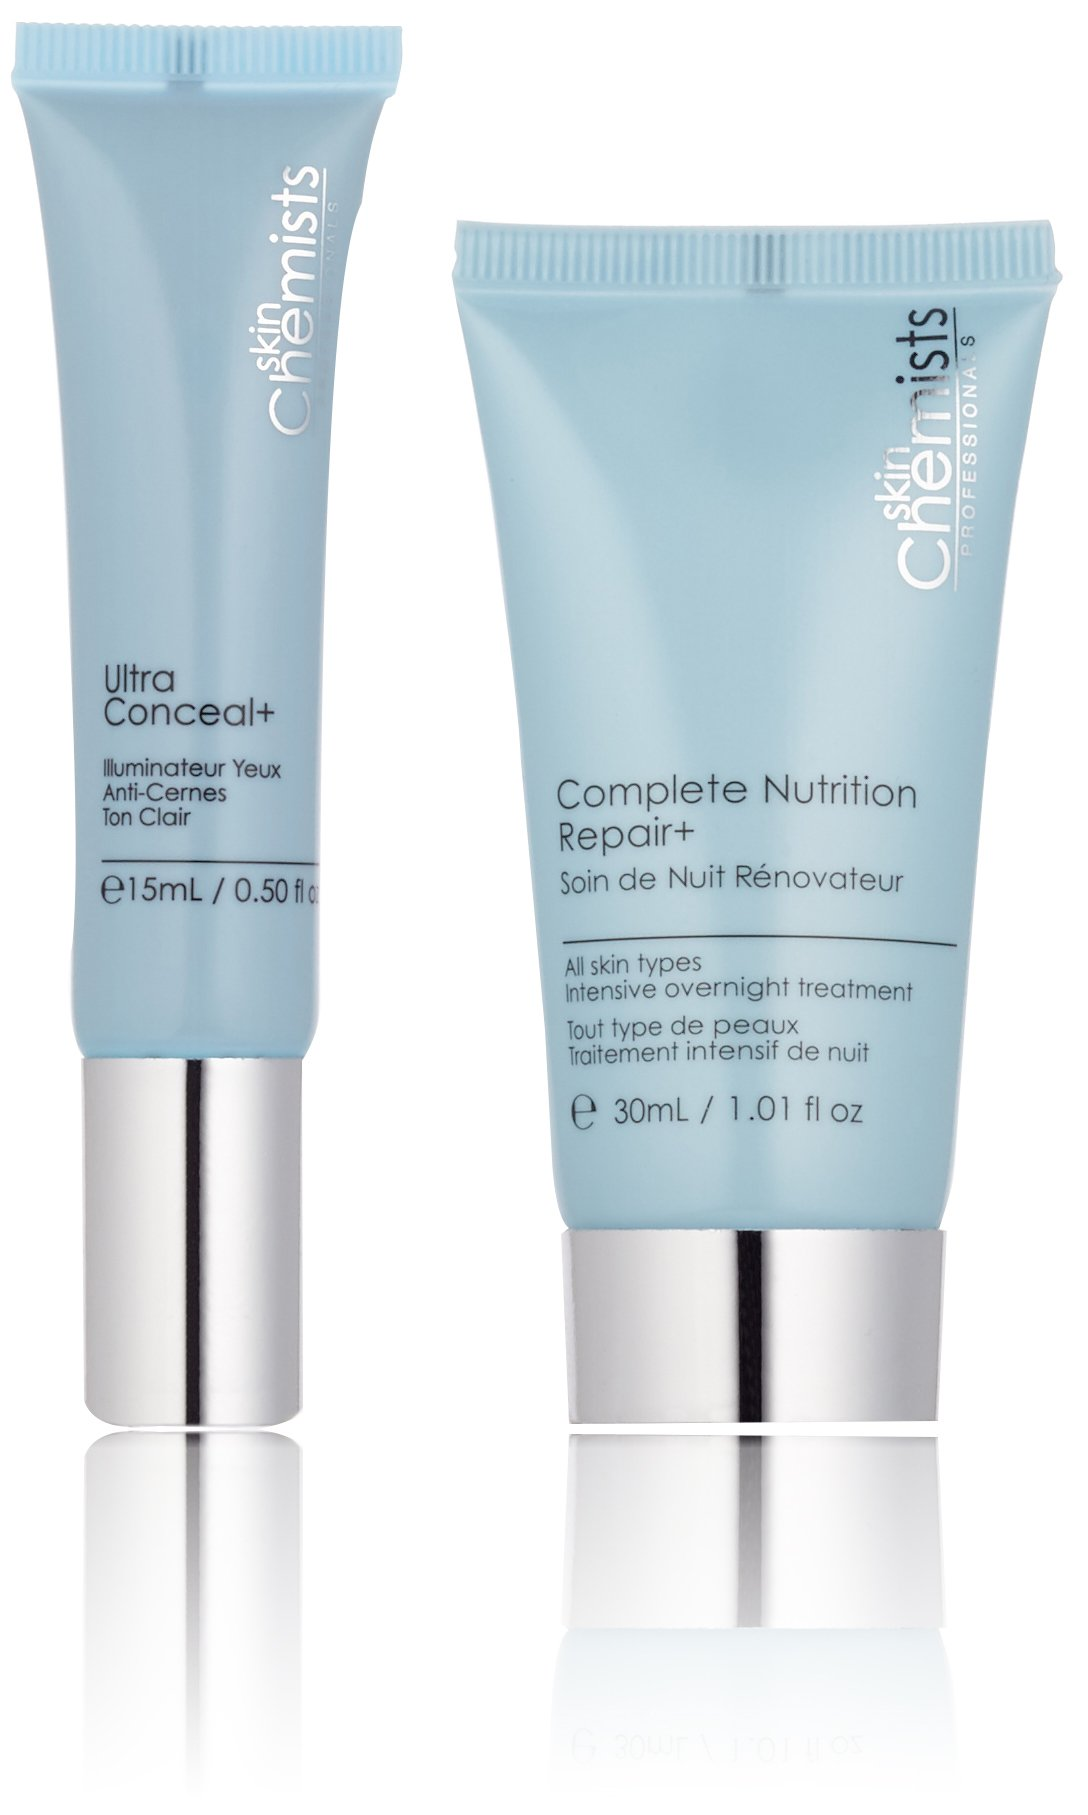 skinChemists Complete Nutrition Repair Plus and Light Ultra Conceal Plus, 40 Gram